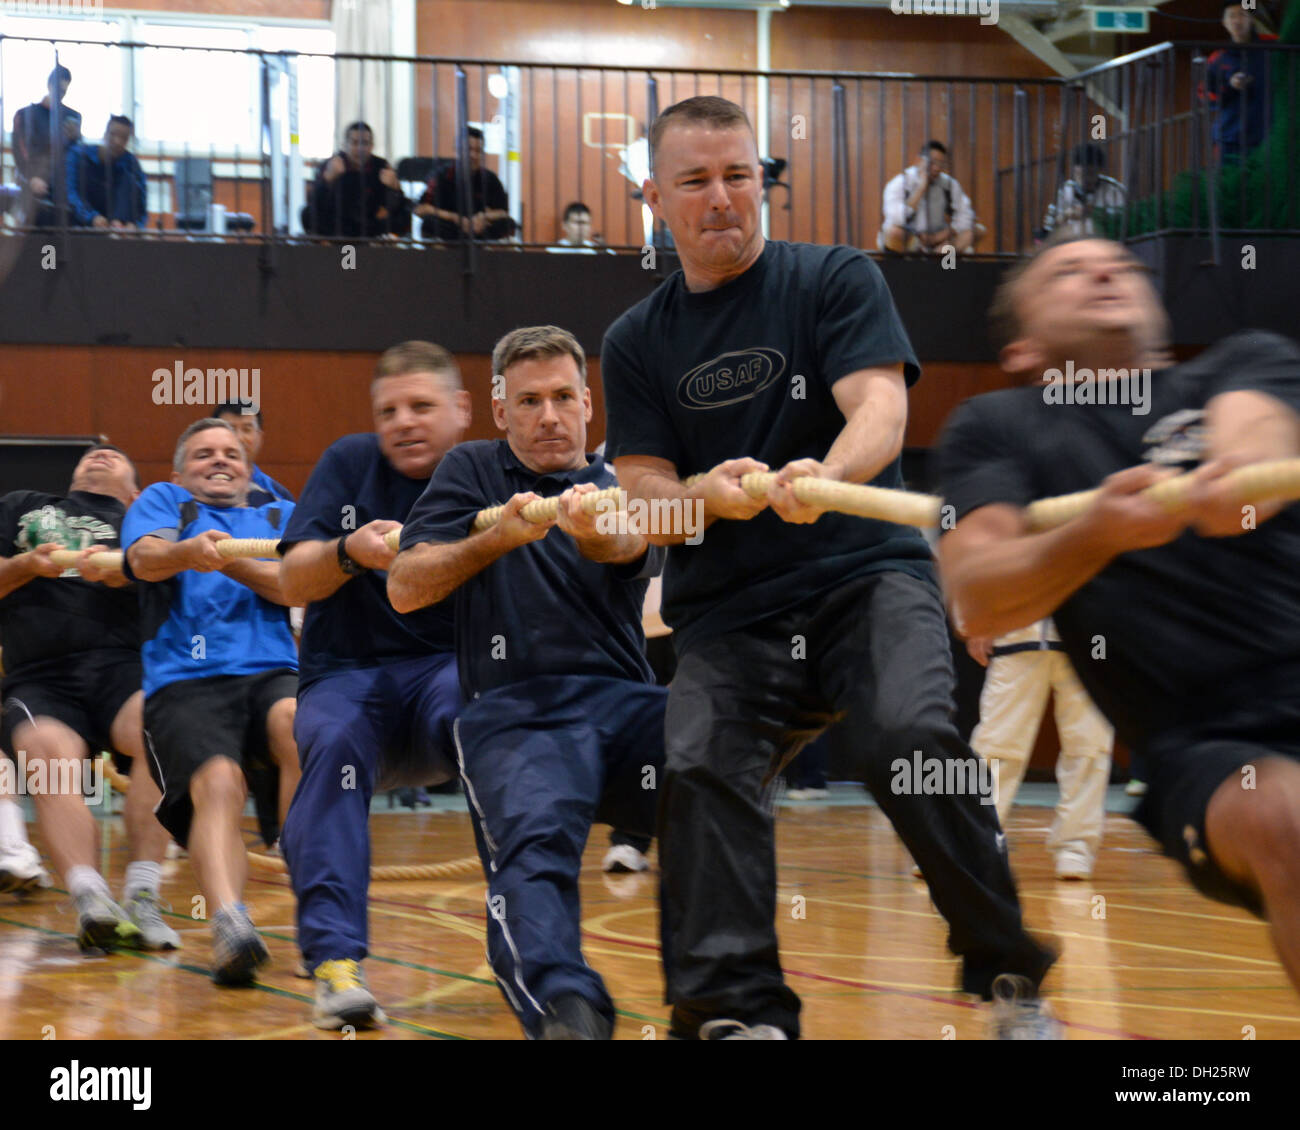 MISAWA AIR BASE, Japan (Oct. 26, 2013) Naval Air Facility Misawa Commanding Officer Capt. Chris Rodeman, center, participates in a tug-of-war competition with U.S. service members and the Japan Air Self-Defense Force, Oct. 26, 2013. This annual event help - Stock Image